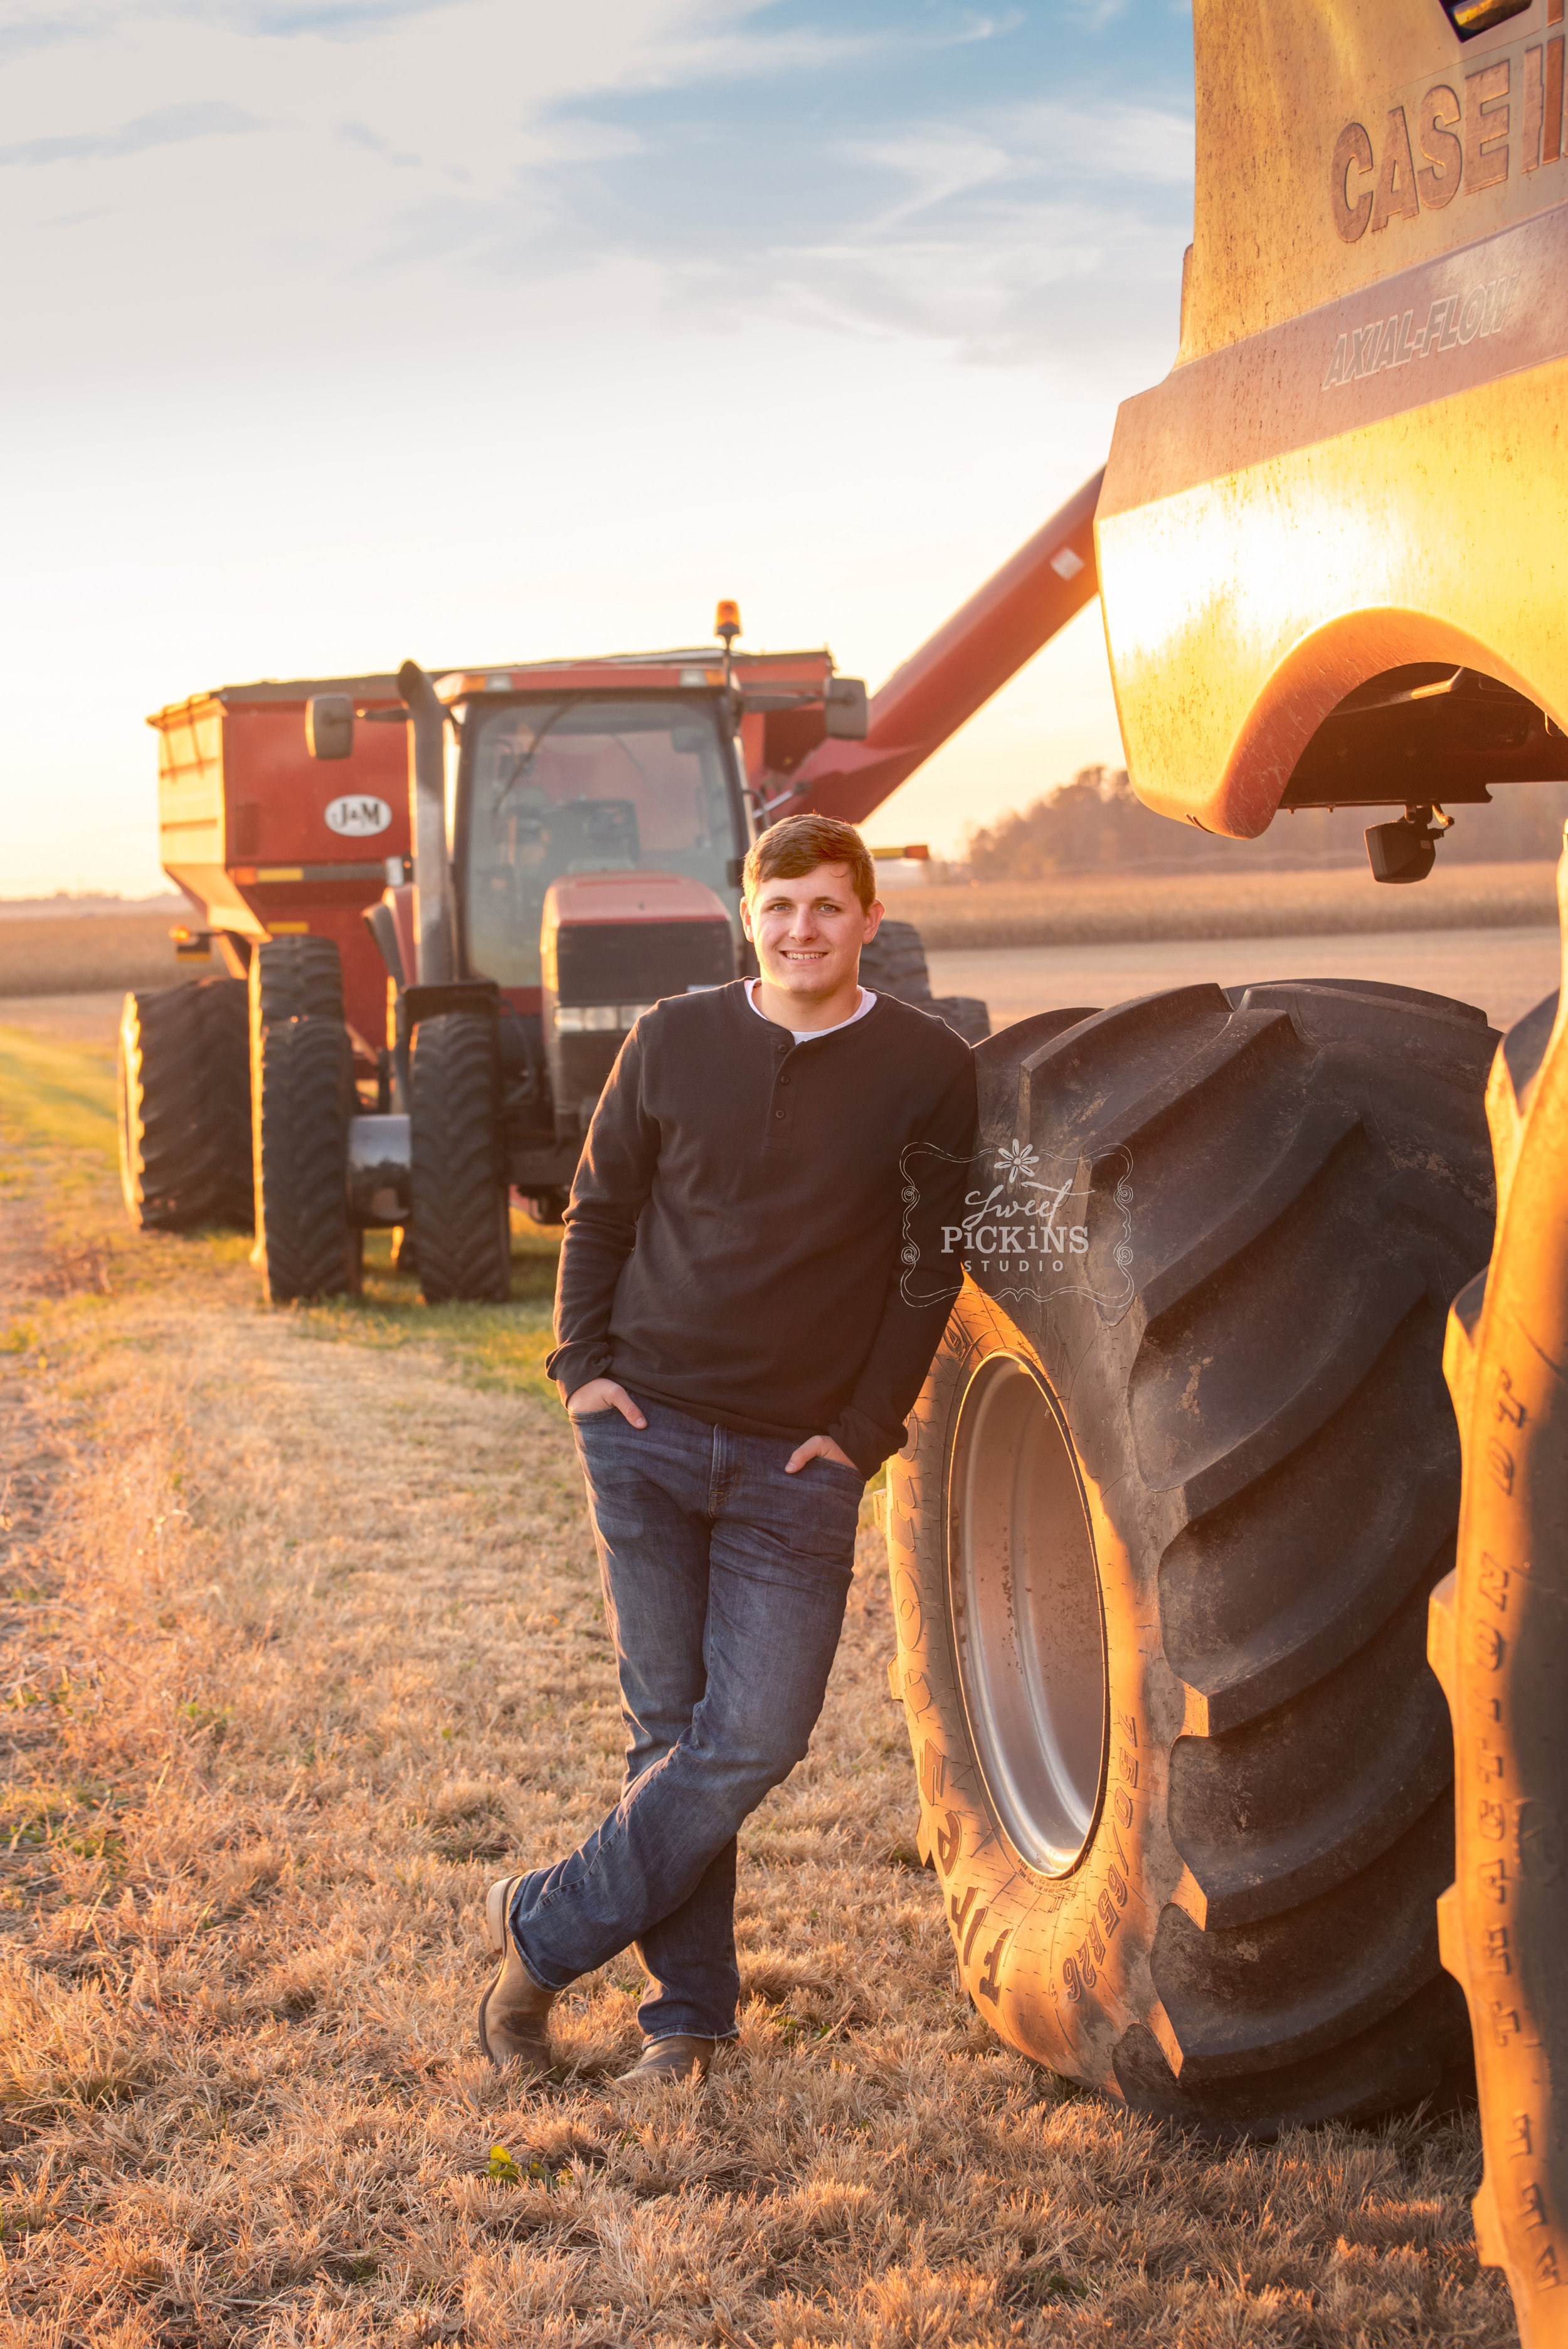 Senior Portrait Photography | Peru, IN Farm Field with Natural Light, Farm Boy with Case IH Tractor and Combine